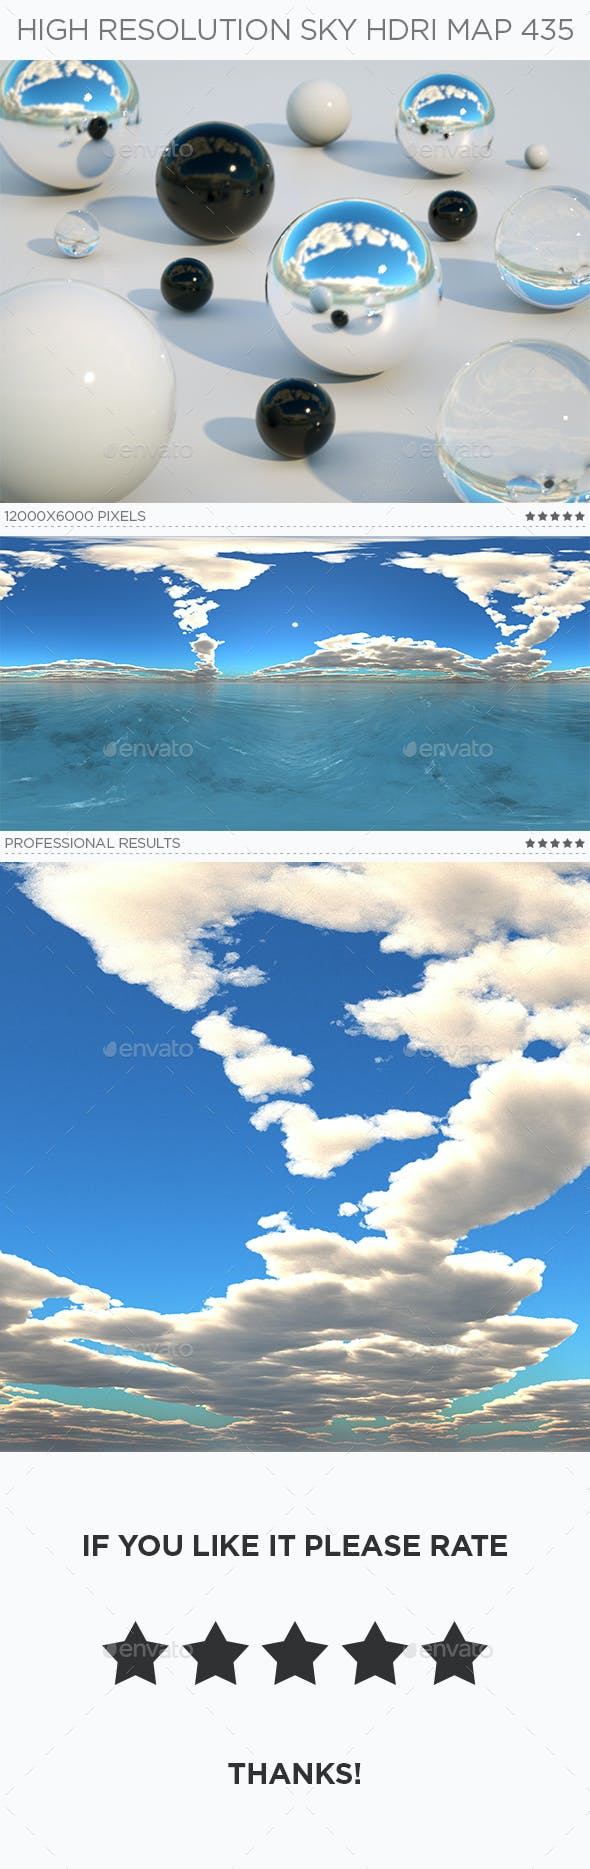 High Resolution Sky HDRi Map 435 - 3DOcean Item for Sale